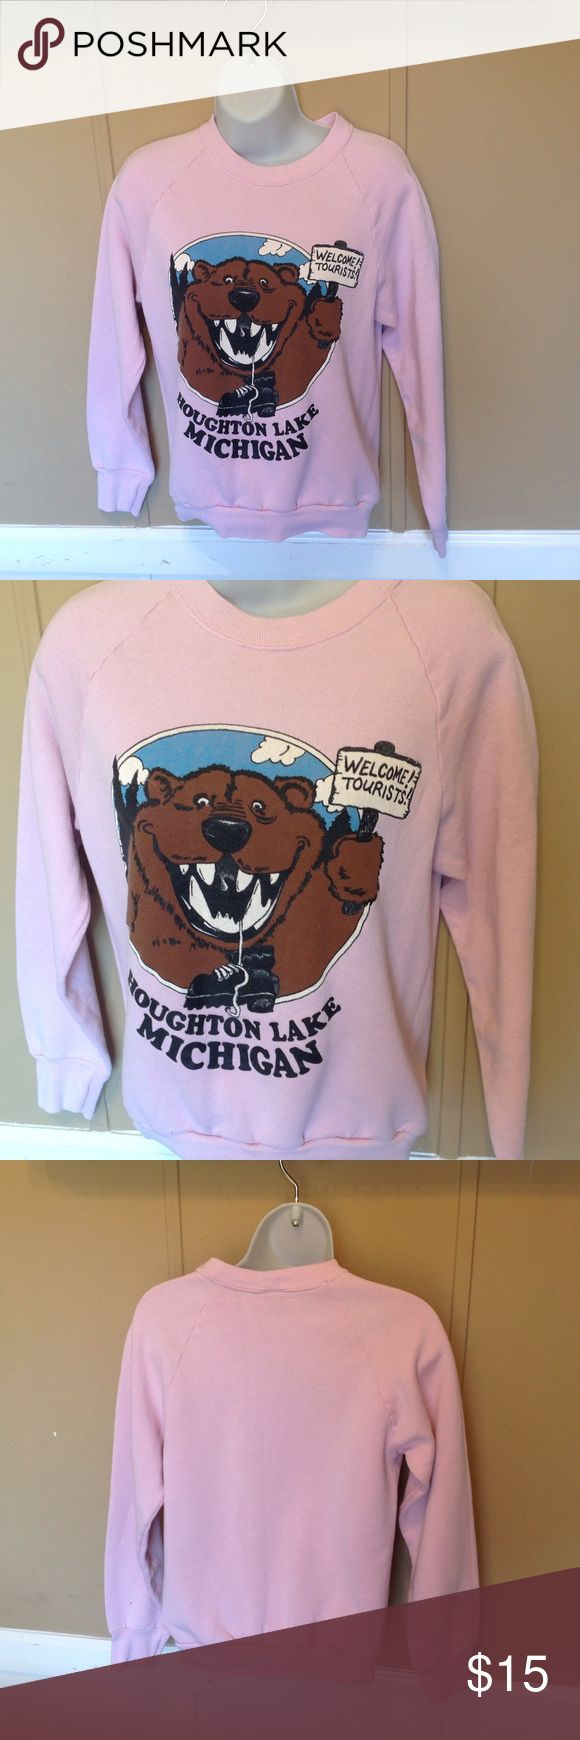 "Vintage 80s Camping in Michigan Sweatshirt Maker: Screen Stars  ♥  Material: 50/50 Poly Cotton  ♥  Color: Pink  ♥  Measured Size:  Pit to pit- 18""  Pit to cuff-16""  Shoulder to waist- 21""  ♥  Tag Size: M  ♥  Actual Size: S  PLEASE CHECK YOUR ACTUAL MEASUREMENTS TO MAKE SURE IT IS THE RIGHT SIZE! THANKS!  ♥  Condition: Good! There are some tiny spots ,nothing major. Tops Sweatshirts & Hoodies"